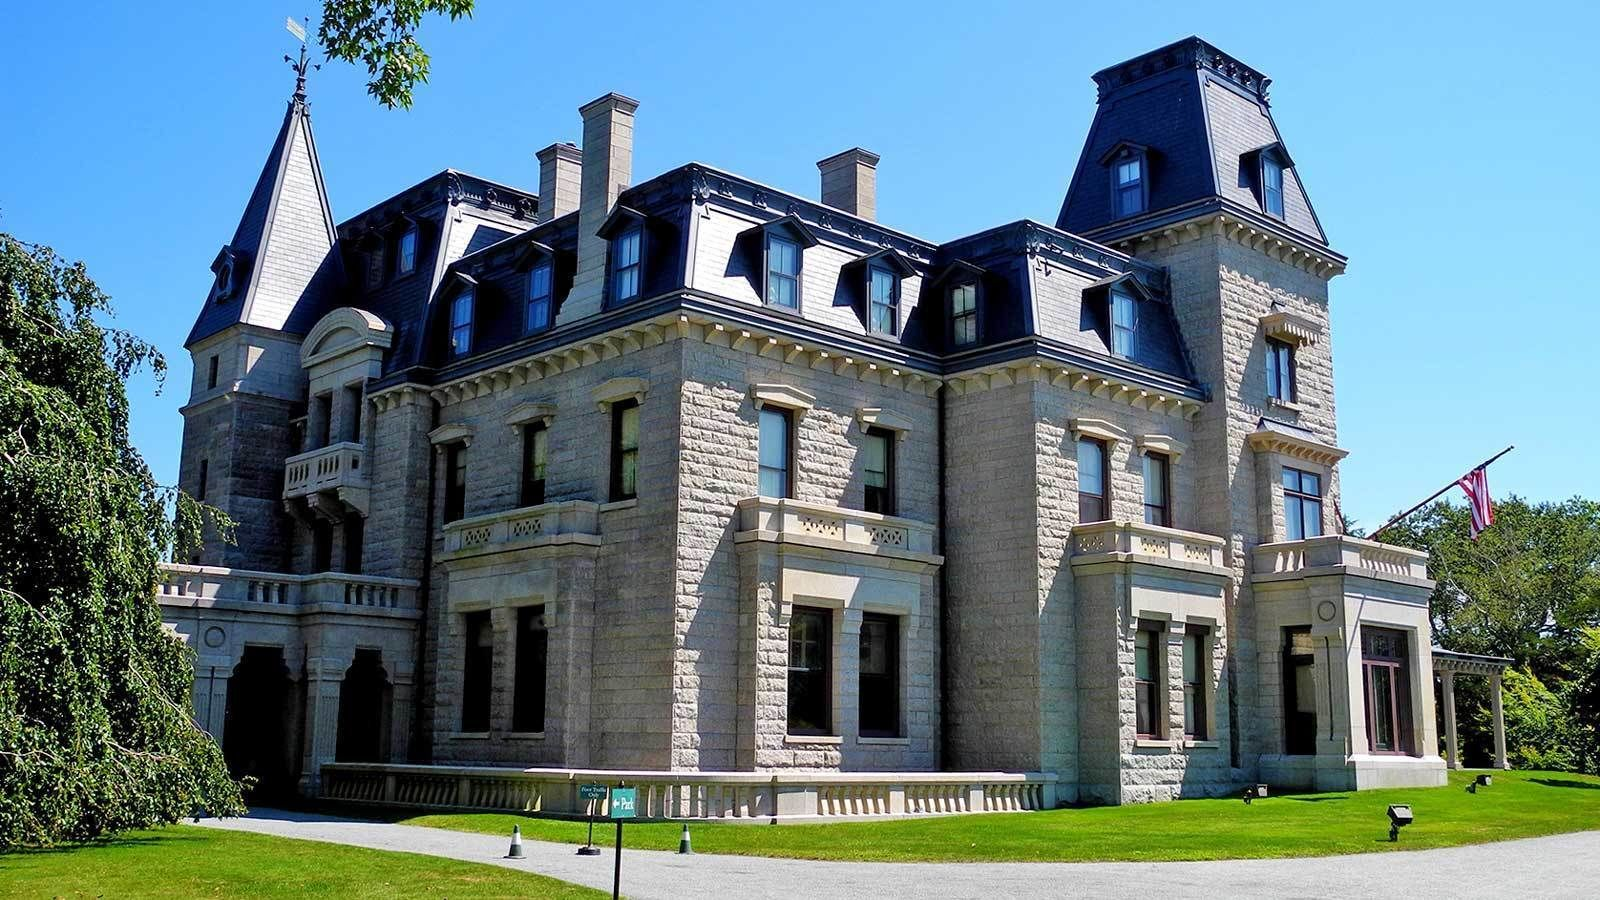 outside of a large mansion in Newport